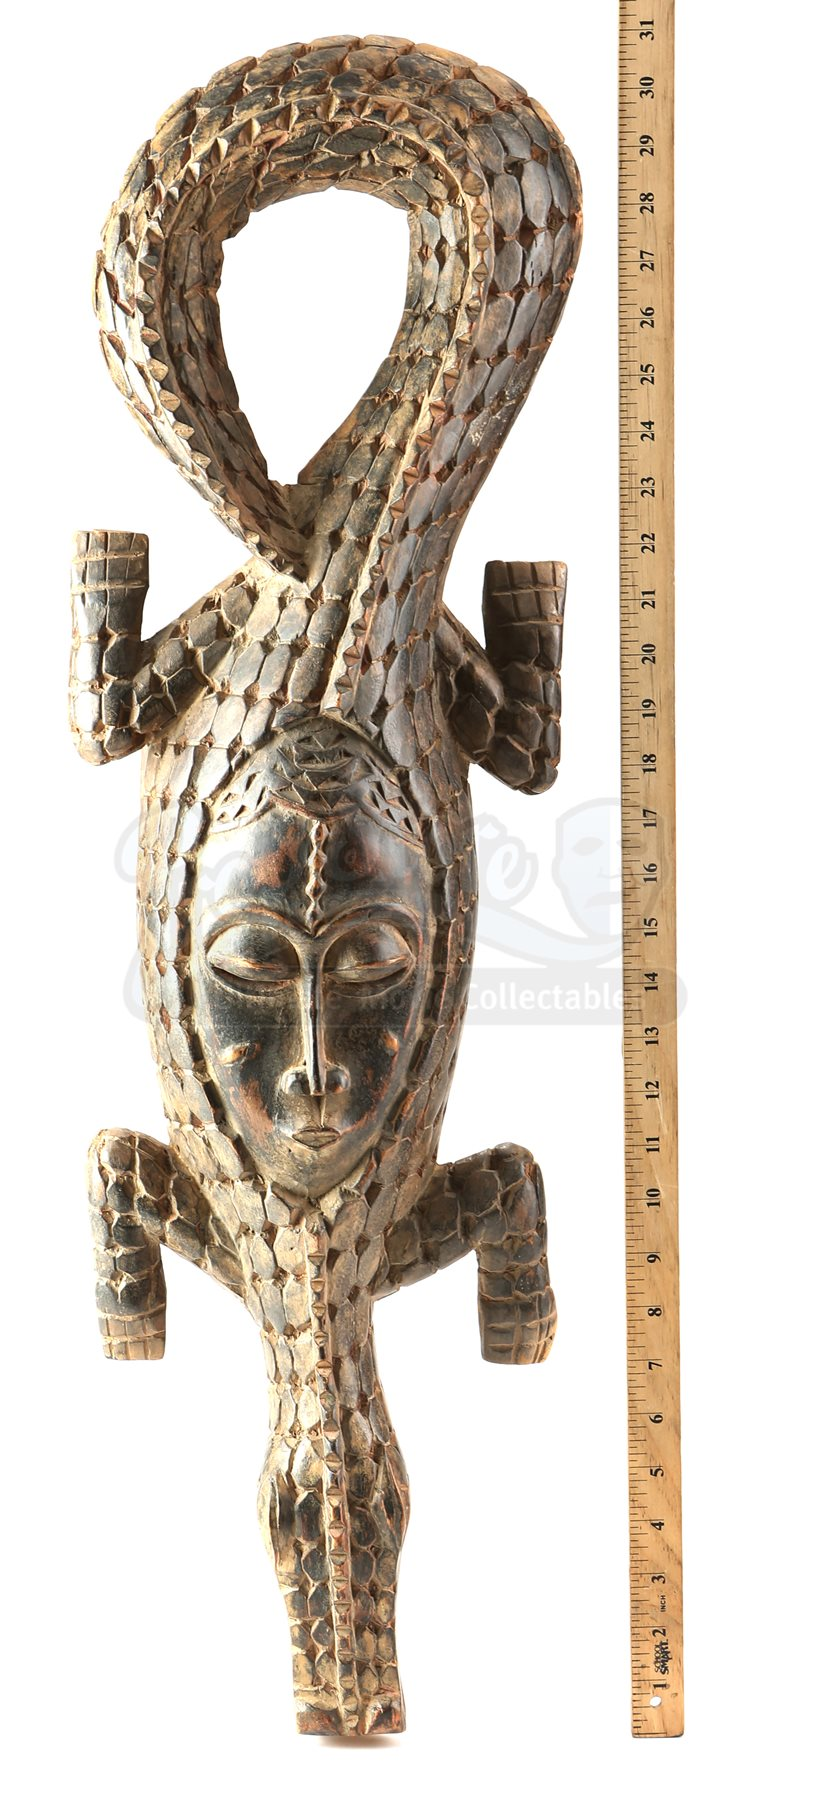 Cullen house crocodile decoration current price 500 for Twilight house price